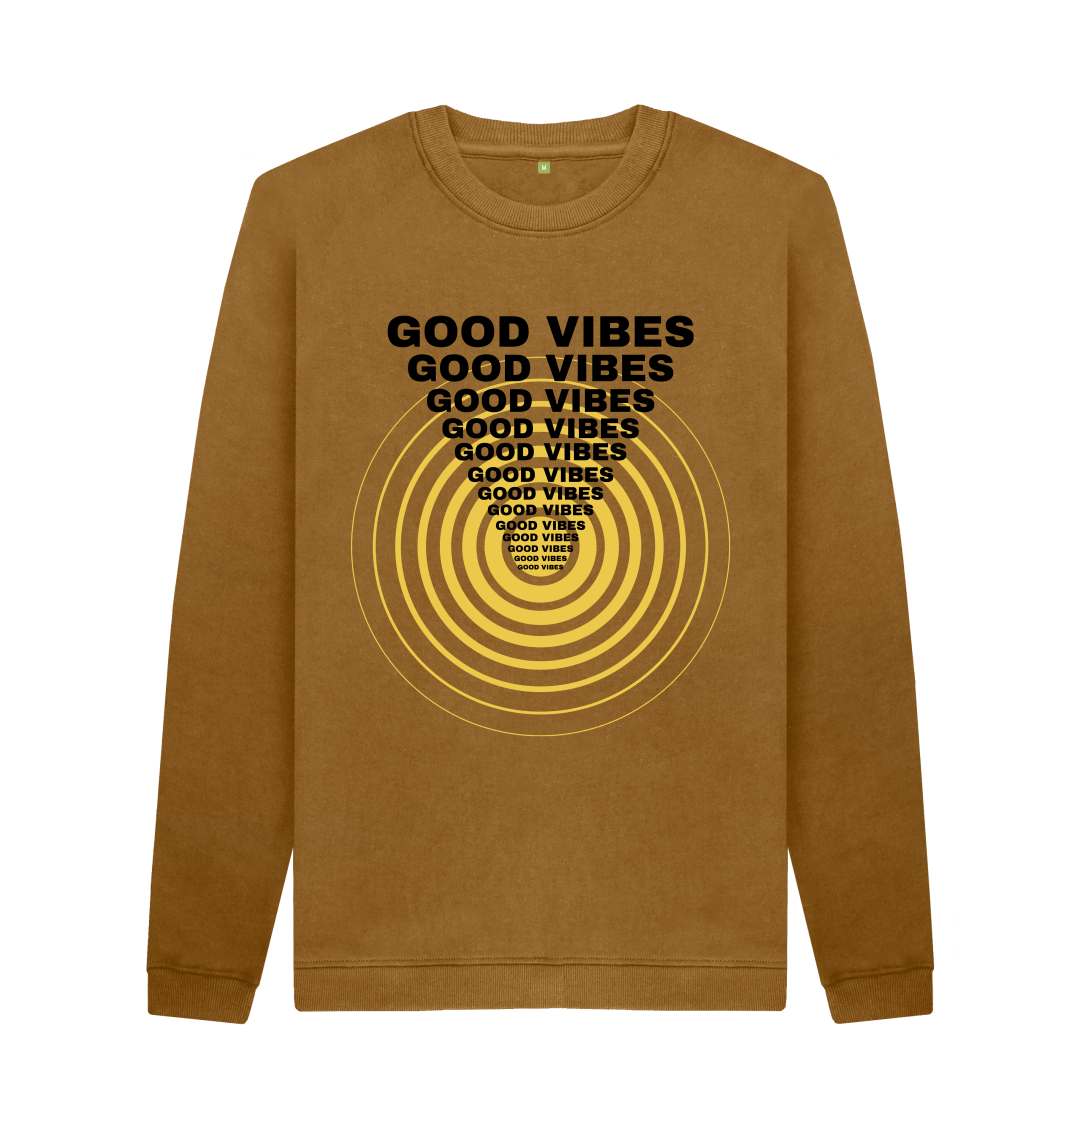 Send out nothing but good vibrations with our totally rad 'Good Vibes' Men's Crew Neck Sweater - perfect for the colder weather. All our products are sustainable, plastic-free, Earth-friendly, Vegan-friendly, Cruelty-free, ethical. Made in a renewable energy powered factory using 100% Certified Organic Cotton! What's best - our products are CIRCULAR, which means it can be returned to us once outworn to be made into new products, keeping it out of landfill! So you can rest assured you're purchase with us is truly KIND to Earth!